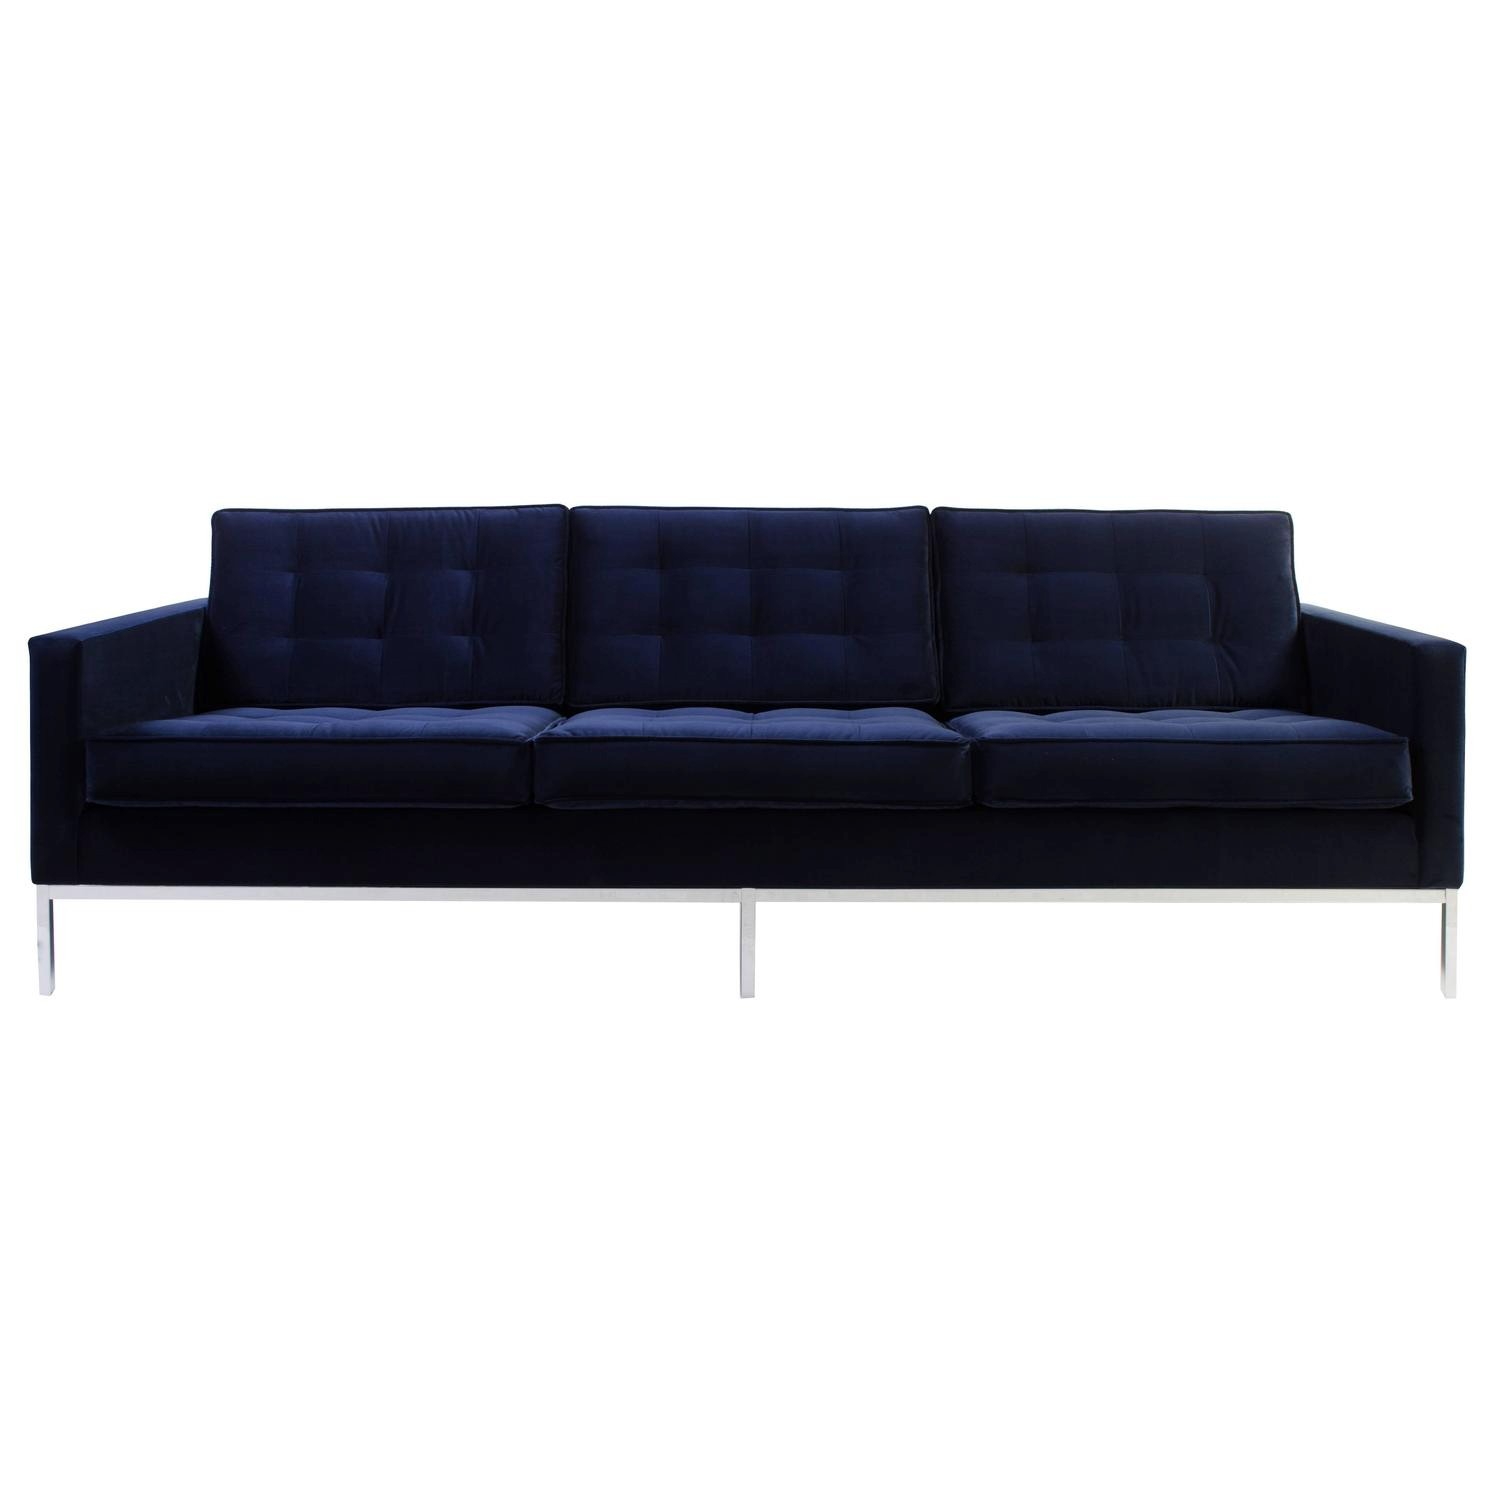 Florence Knoll sofa Fascinating Florence Knoll sofa In Navy Velvet for Sale at 1stdibs Décor